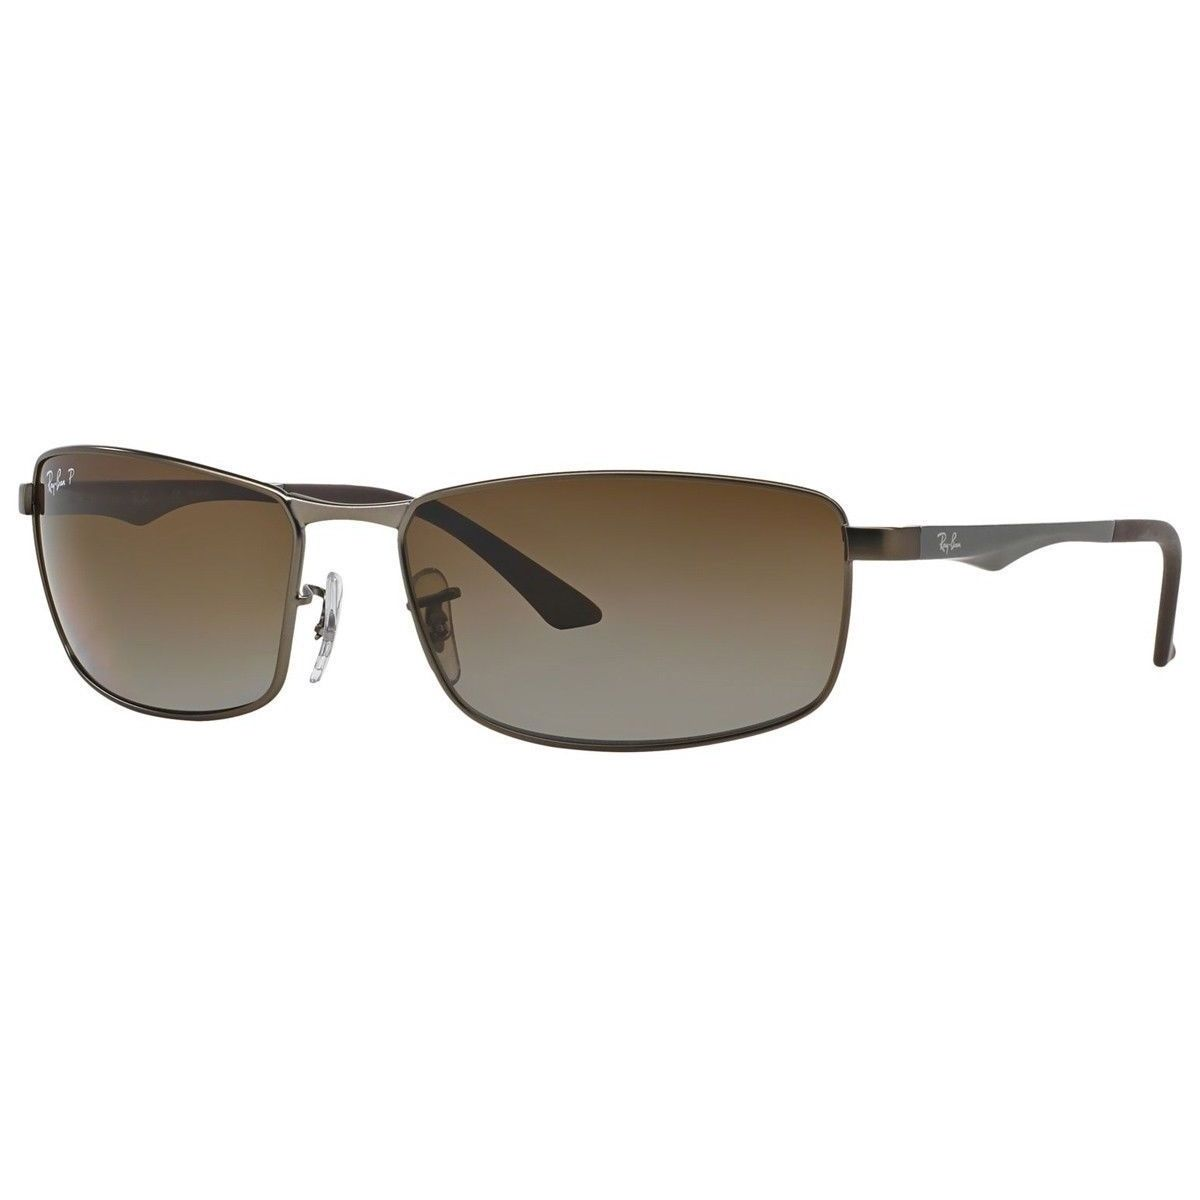 9a467b3381 Shop Ray-Ban RB3498 029 T5 Gunmetal Frame Polarized Brown Gradient 64mm  Lens Sunglasses - Free Shipping Today - Overstock - 14327980